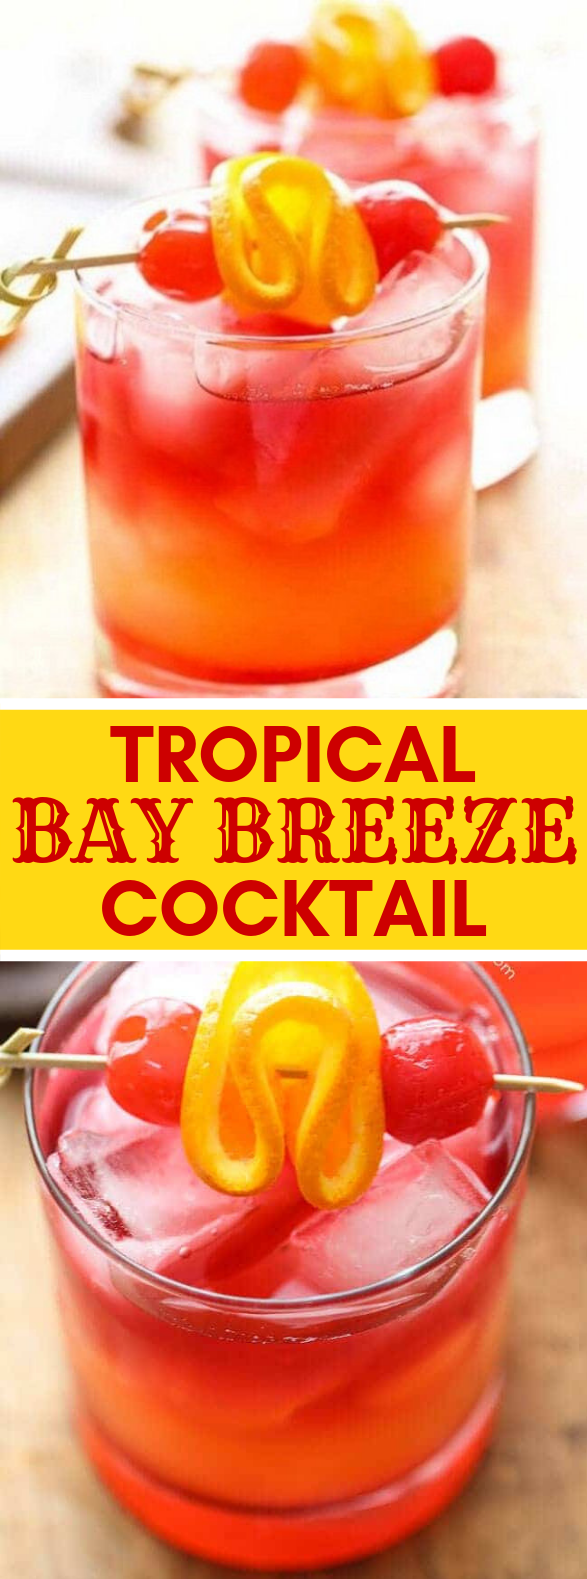 Tropical Bay Breeze Cocktail #drink #cocktails